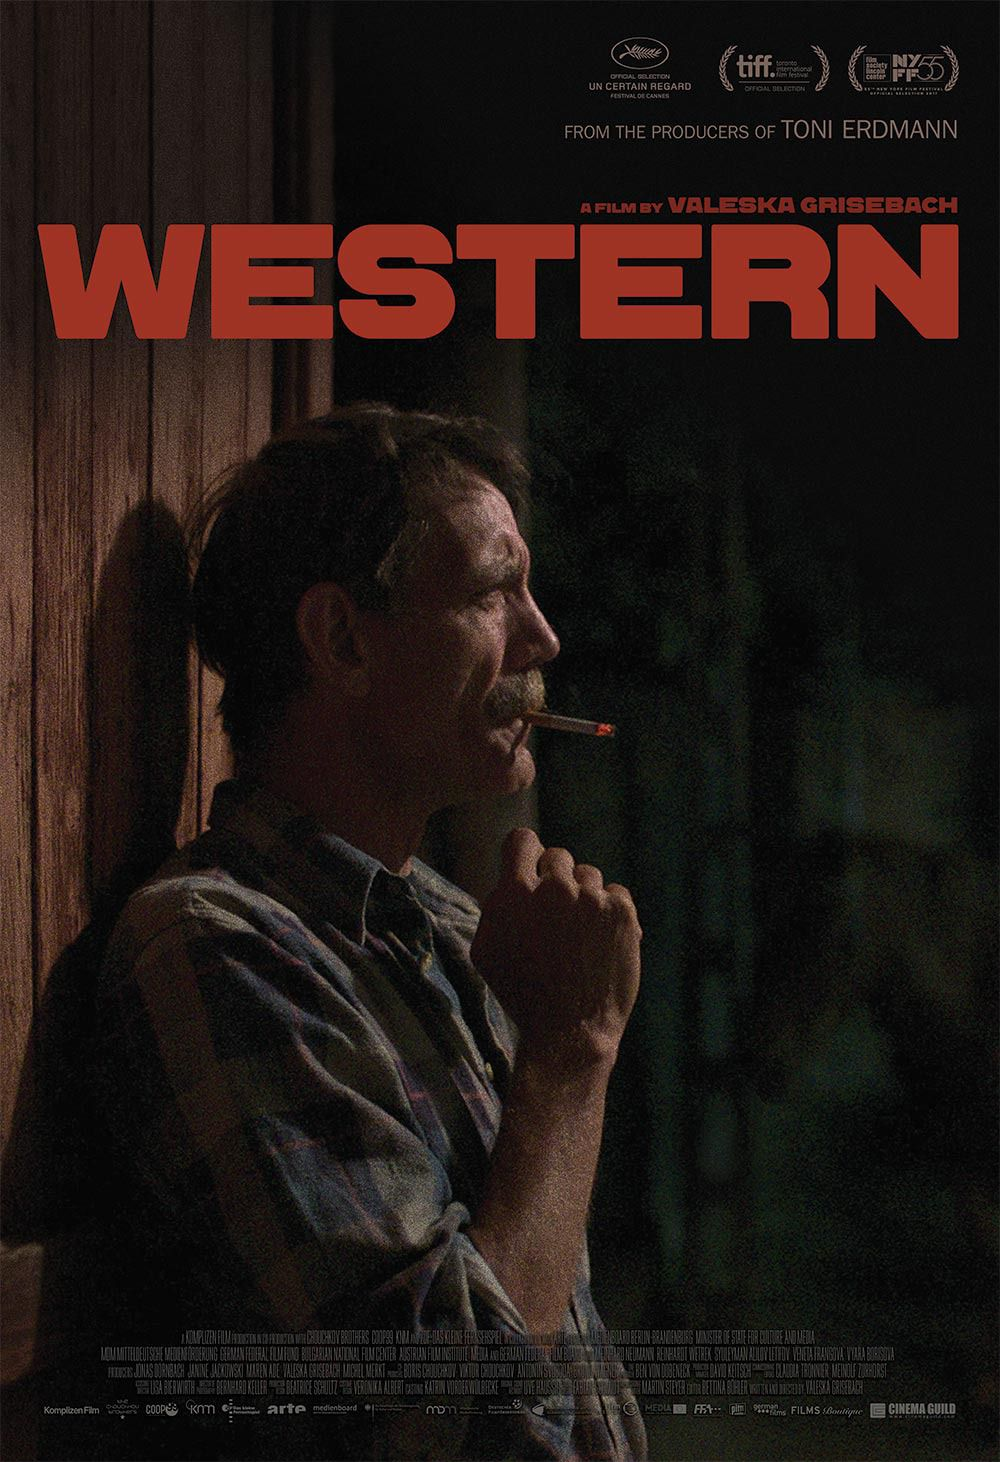 Western - film poster 2018